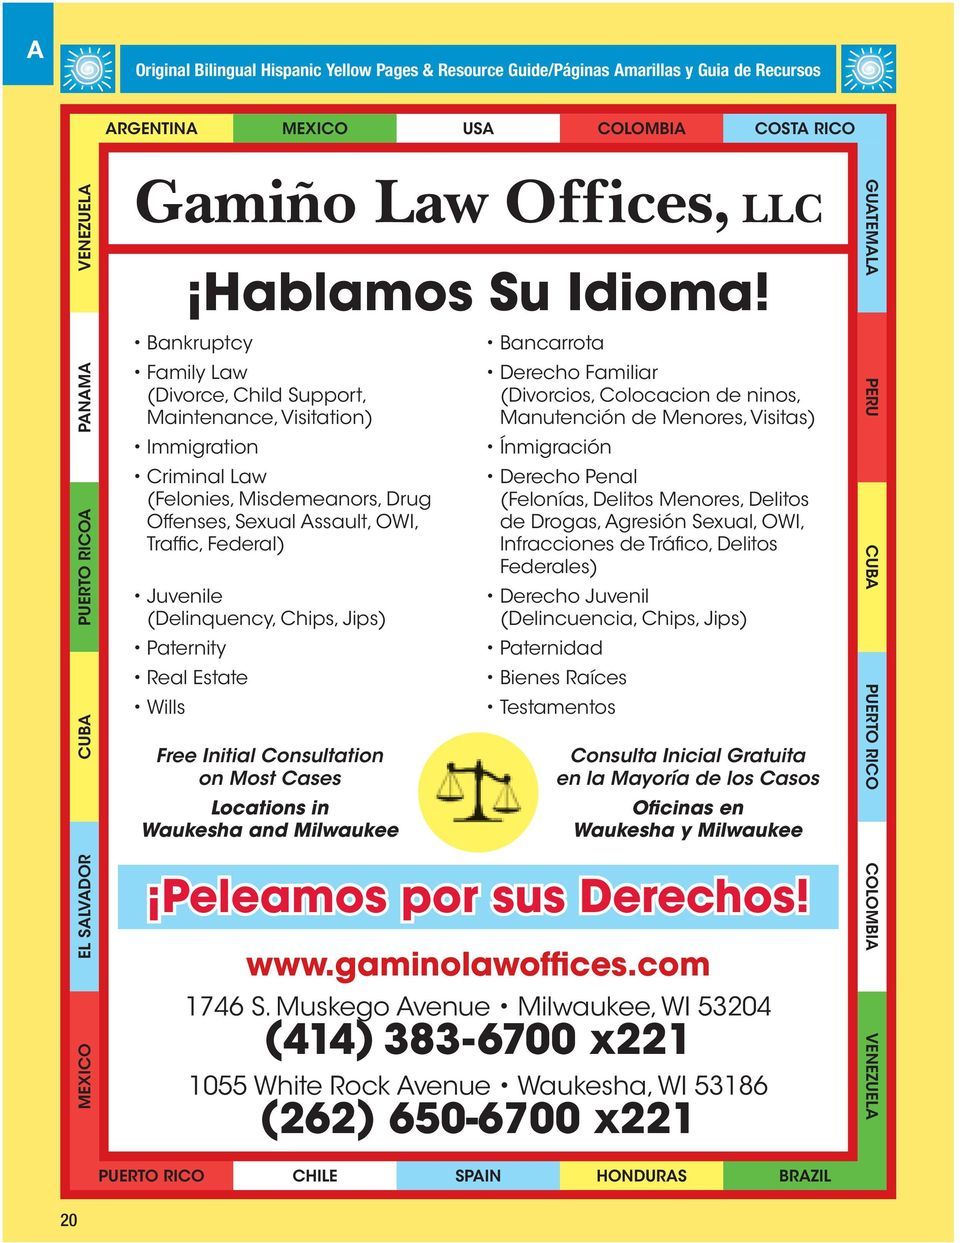 Chips, Jips) Paternity Real Estate Wills Free Initial Consultation on Most Cases Locations in Waukesha and Milwaukee Bancarrota Derecho Familiar (Divorcios, Colocacion de ninos, Manutención de